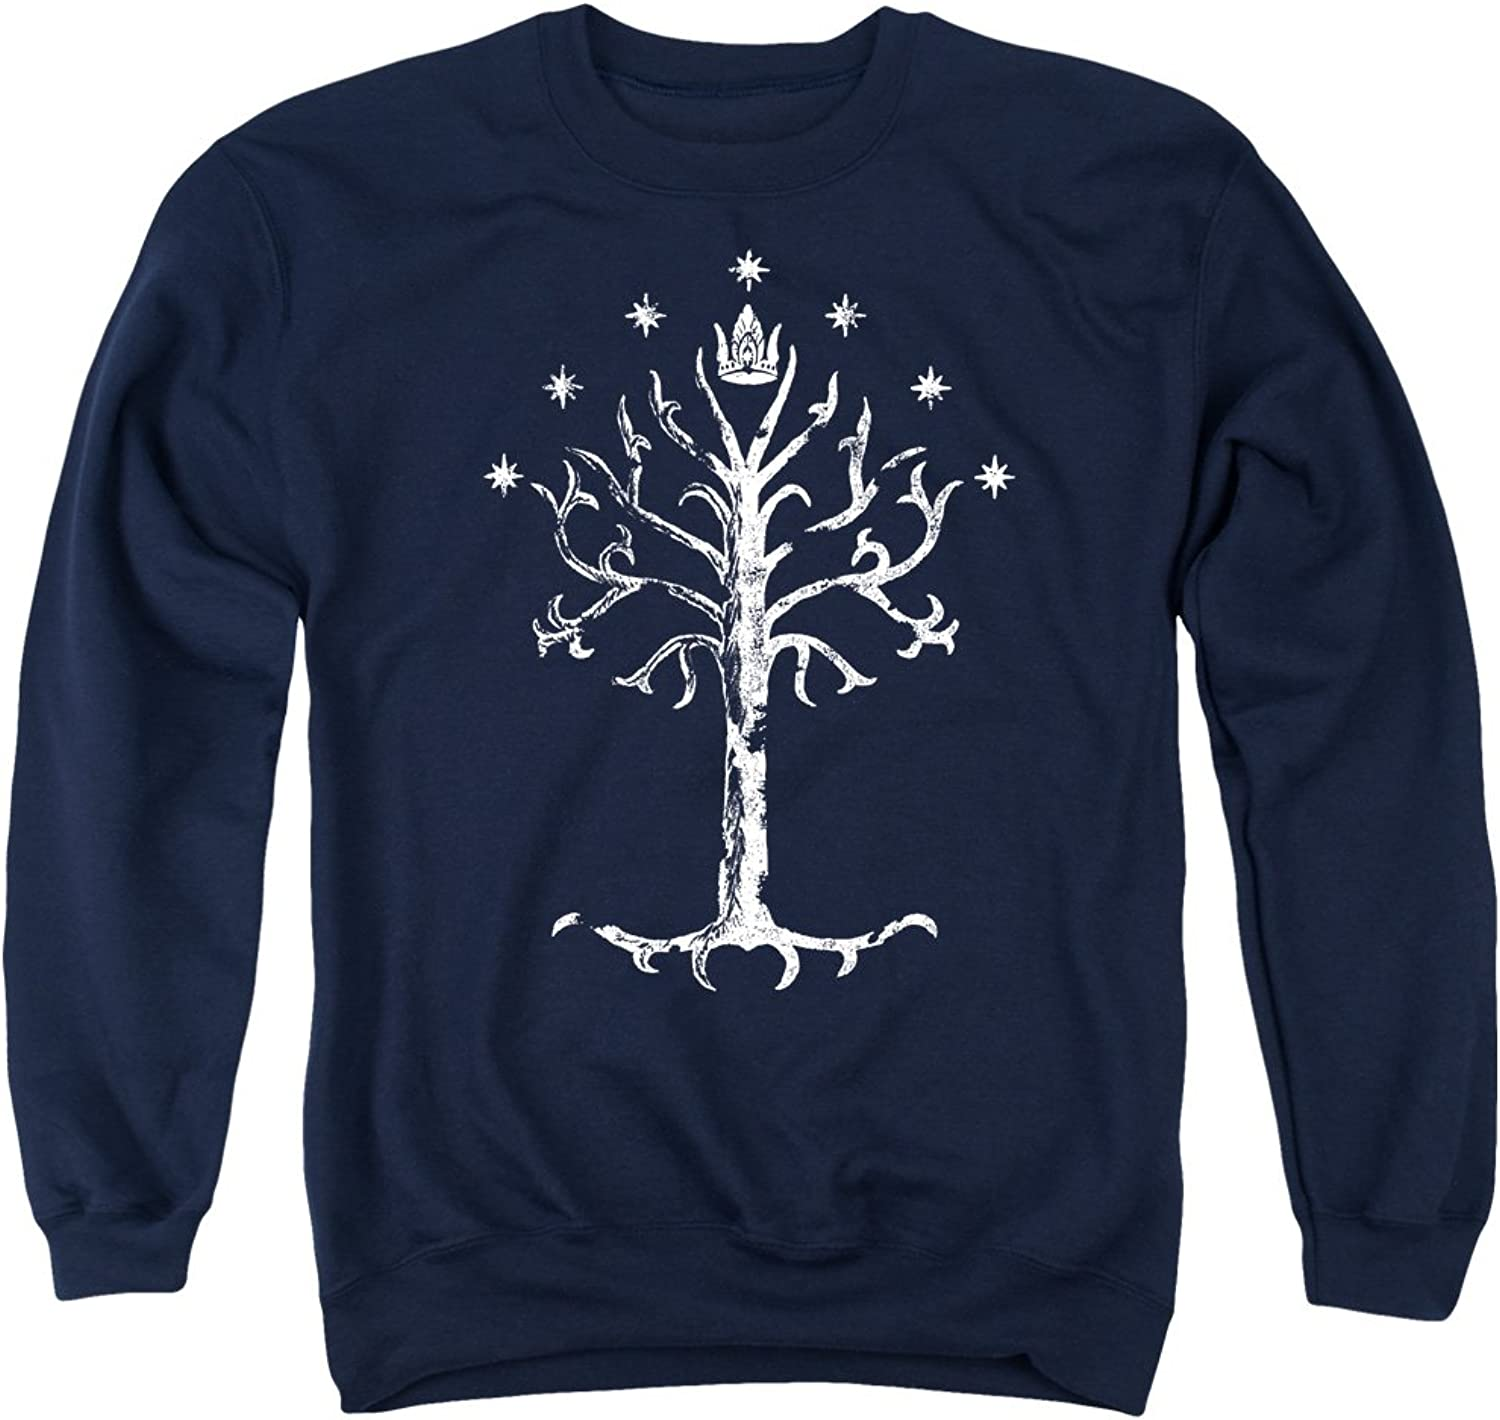 Lord of the Rings  Mens Tree of Gondor Sweater